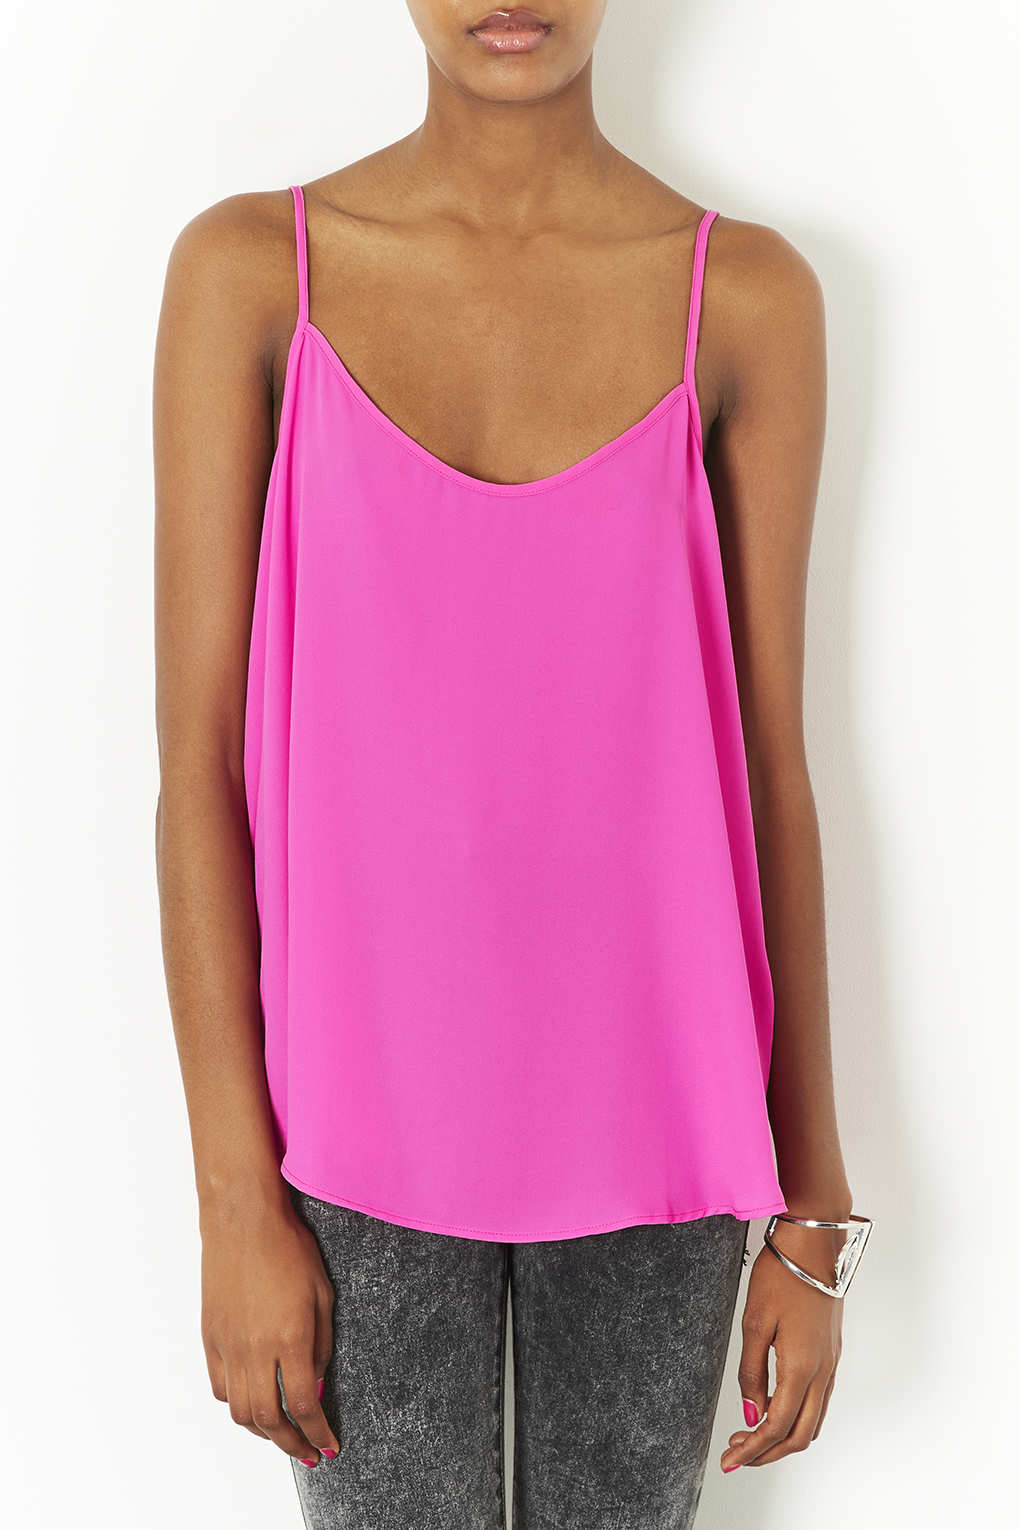 running shoes most popular well known TOPSHOP Tall Strappy Cami in Bright Pink (Purple) - Lyst